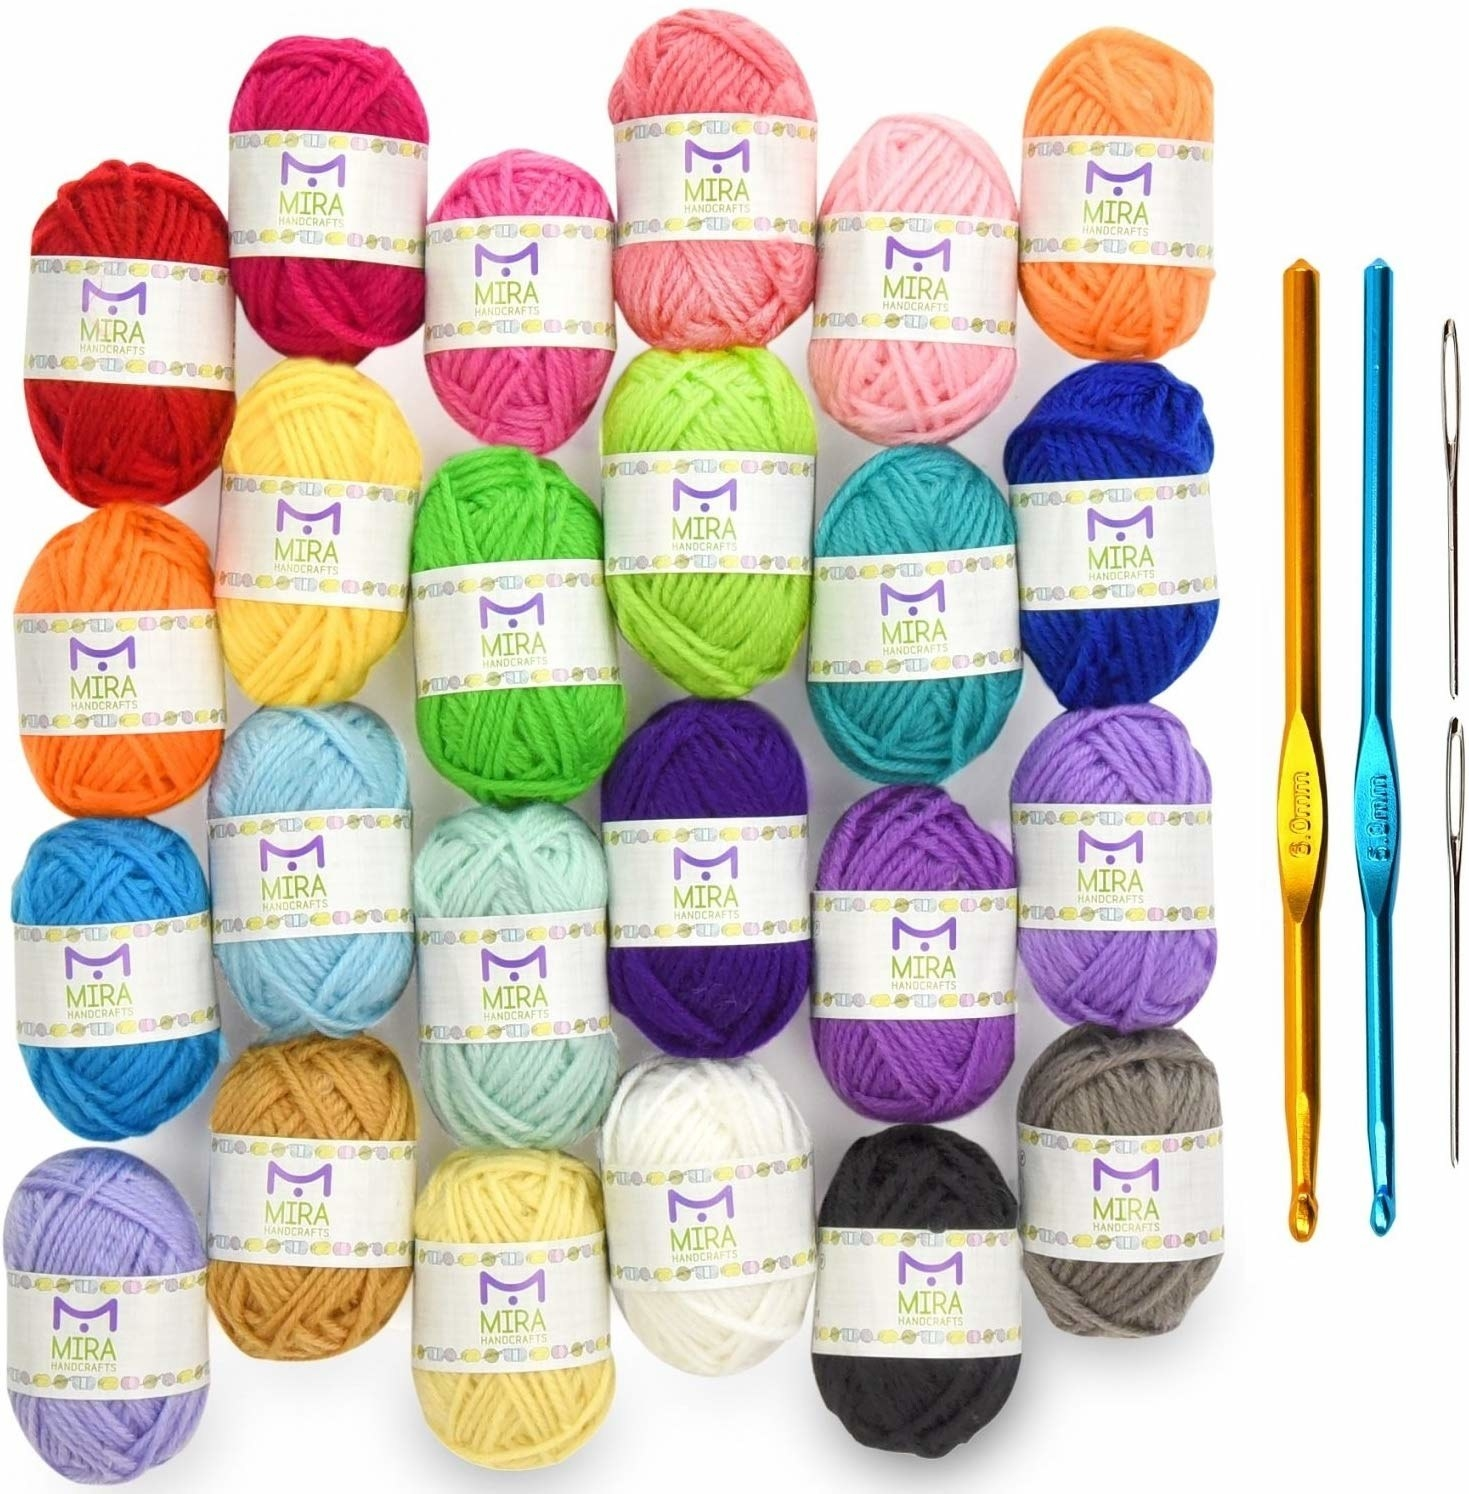 Balls of yarn in various colors and two crochet hooks and a needle